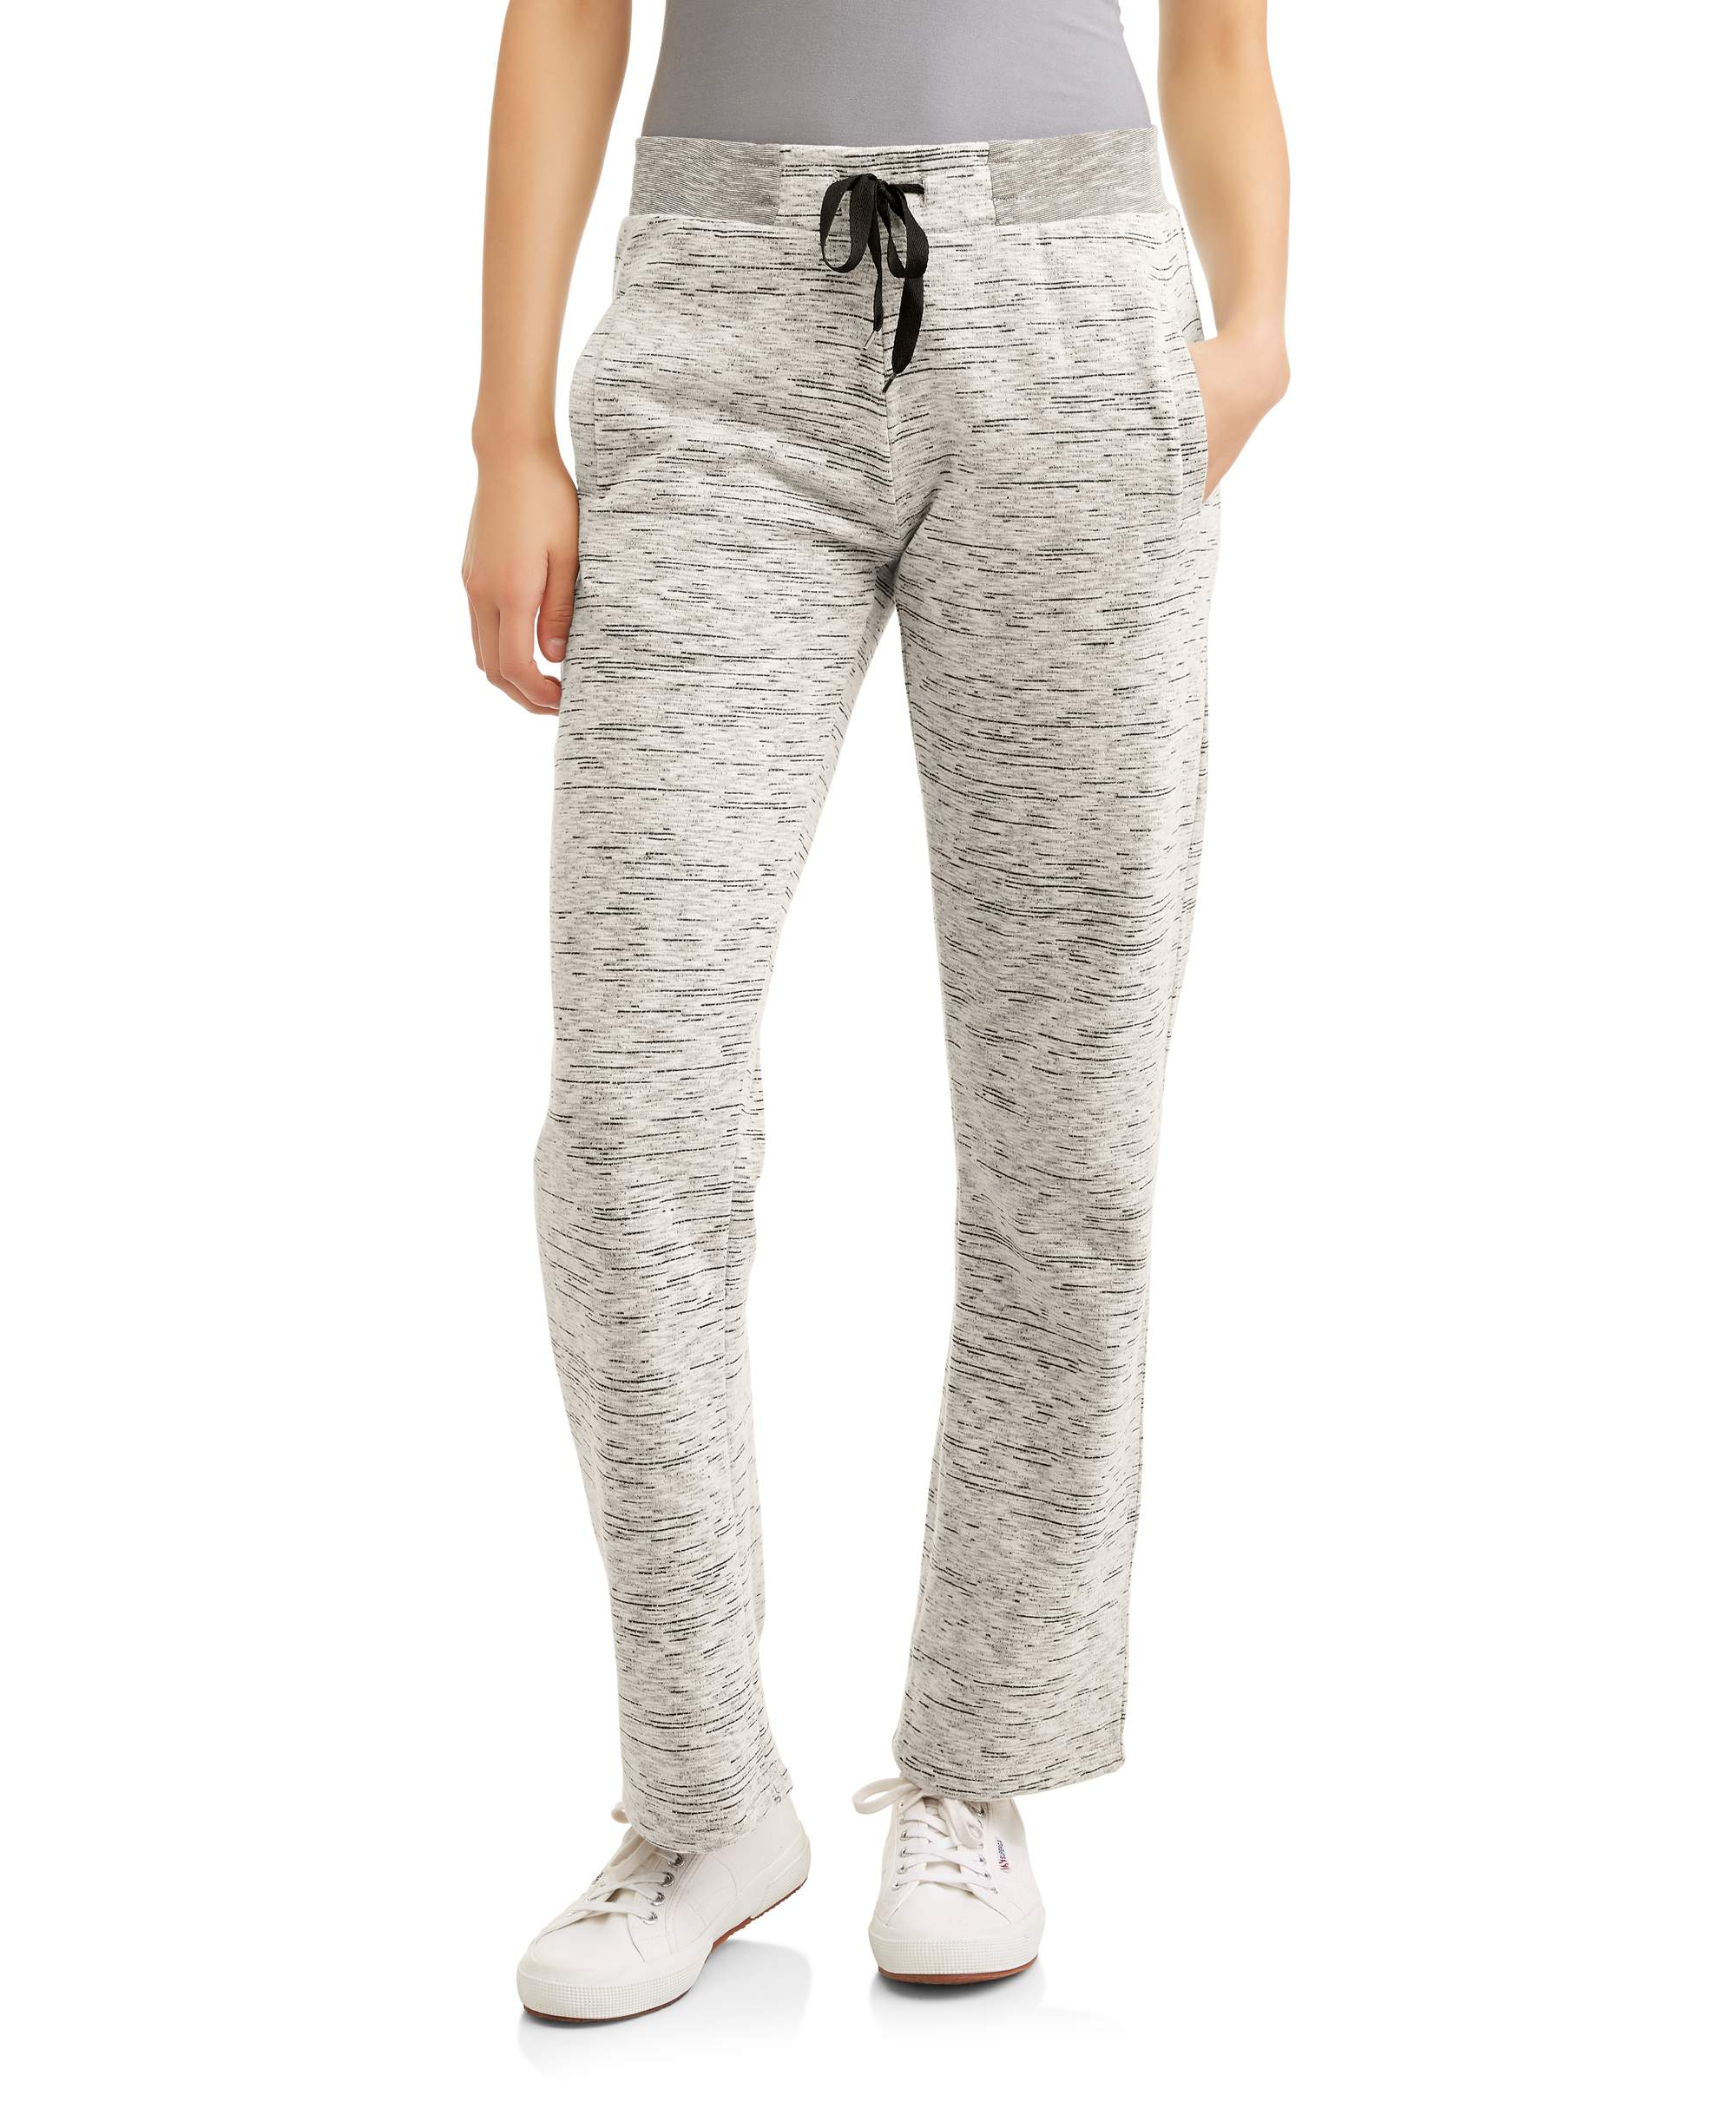 Women's Athleisure Cozy Fleece Relaxed Fit Pant